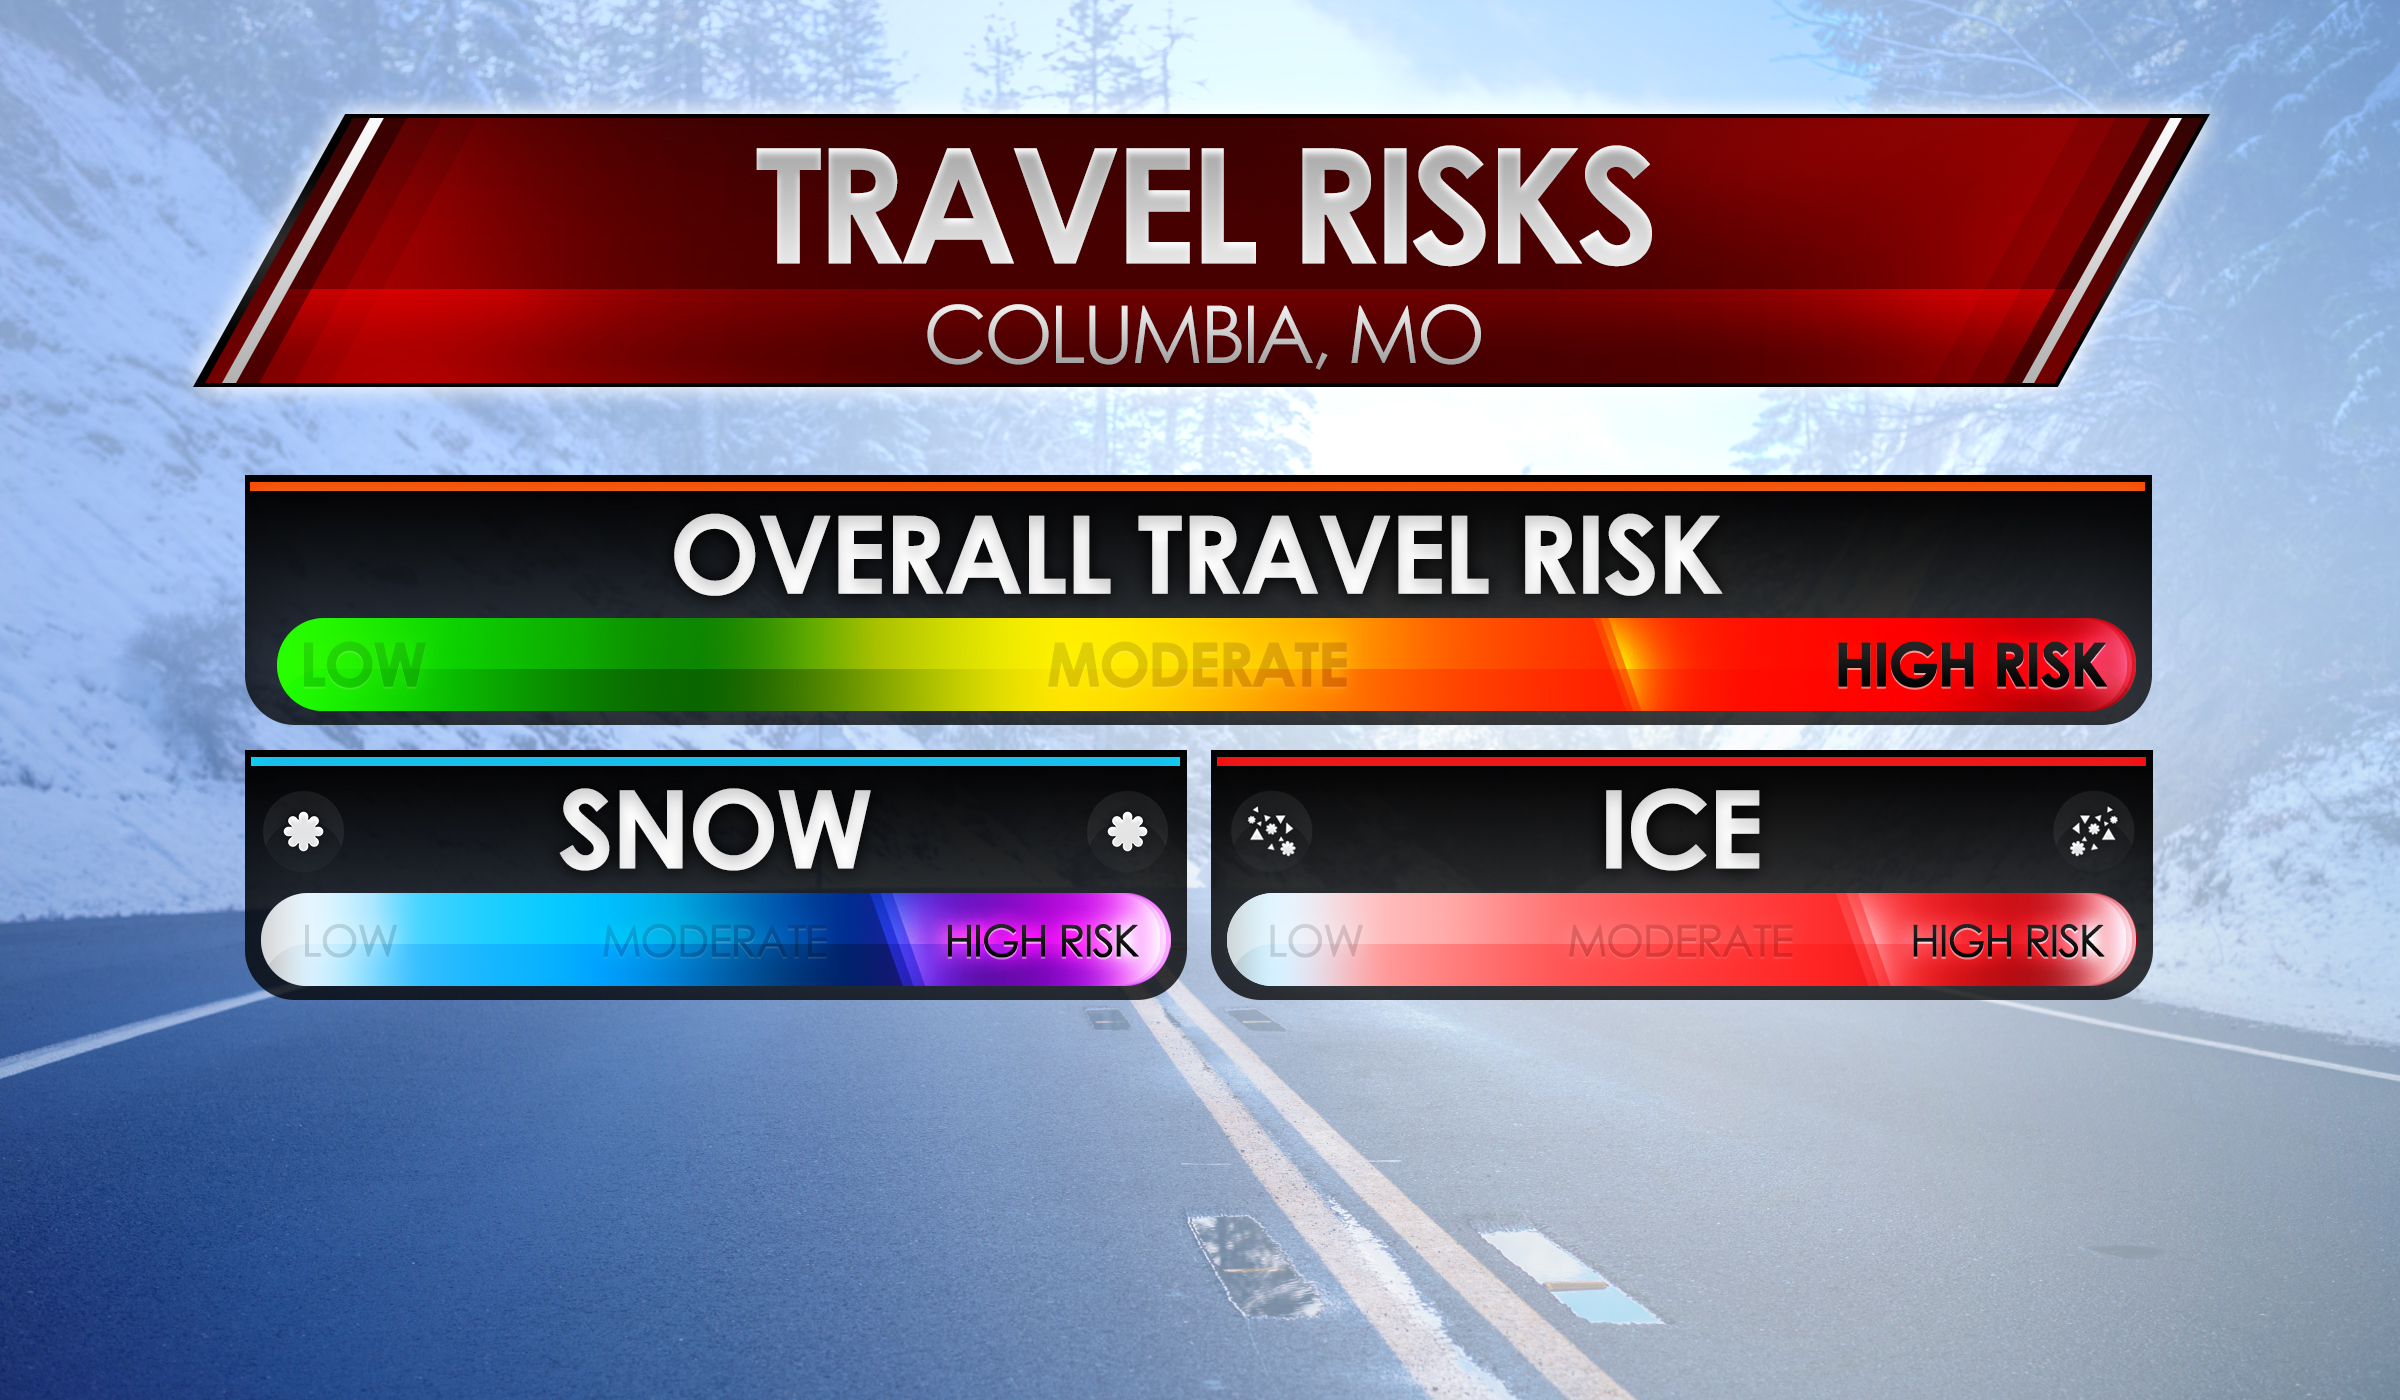 Travel Risk Columbia